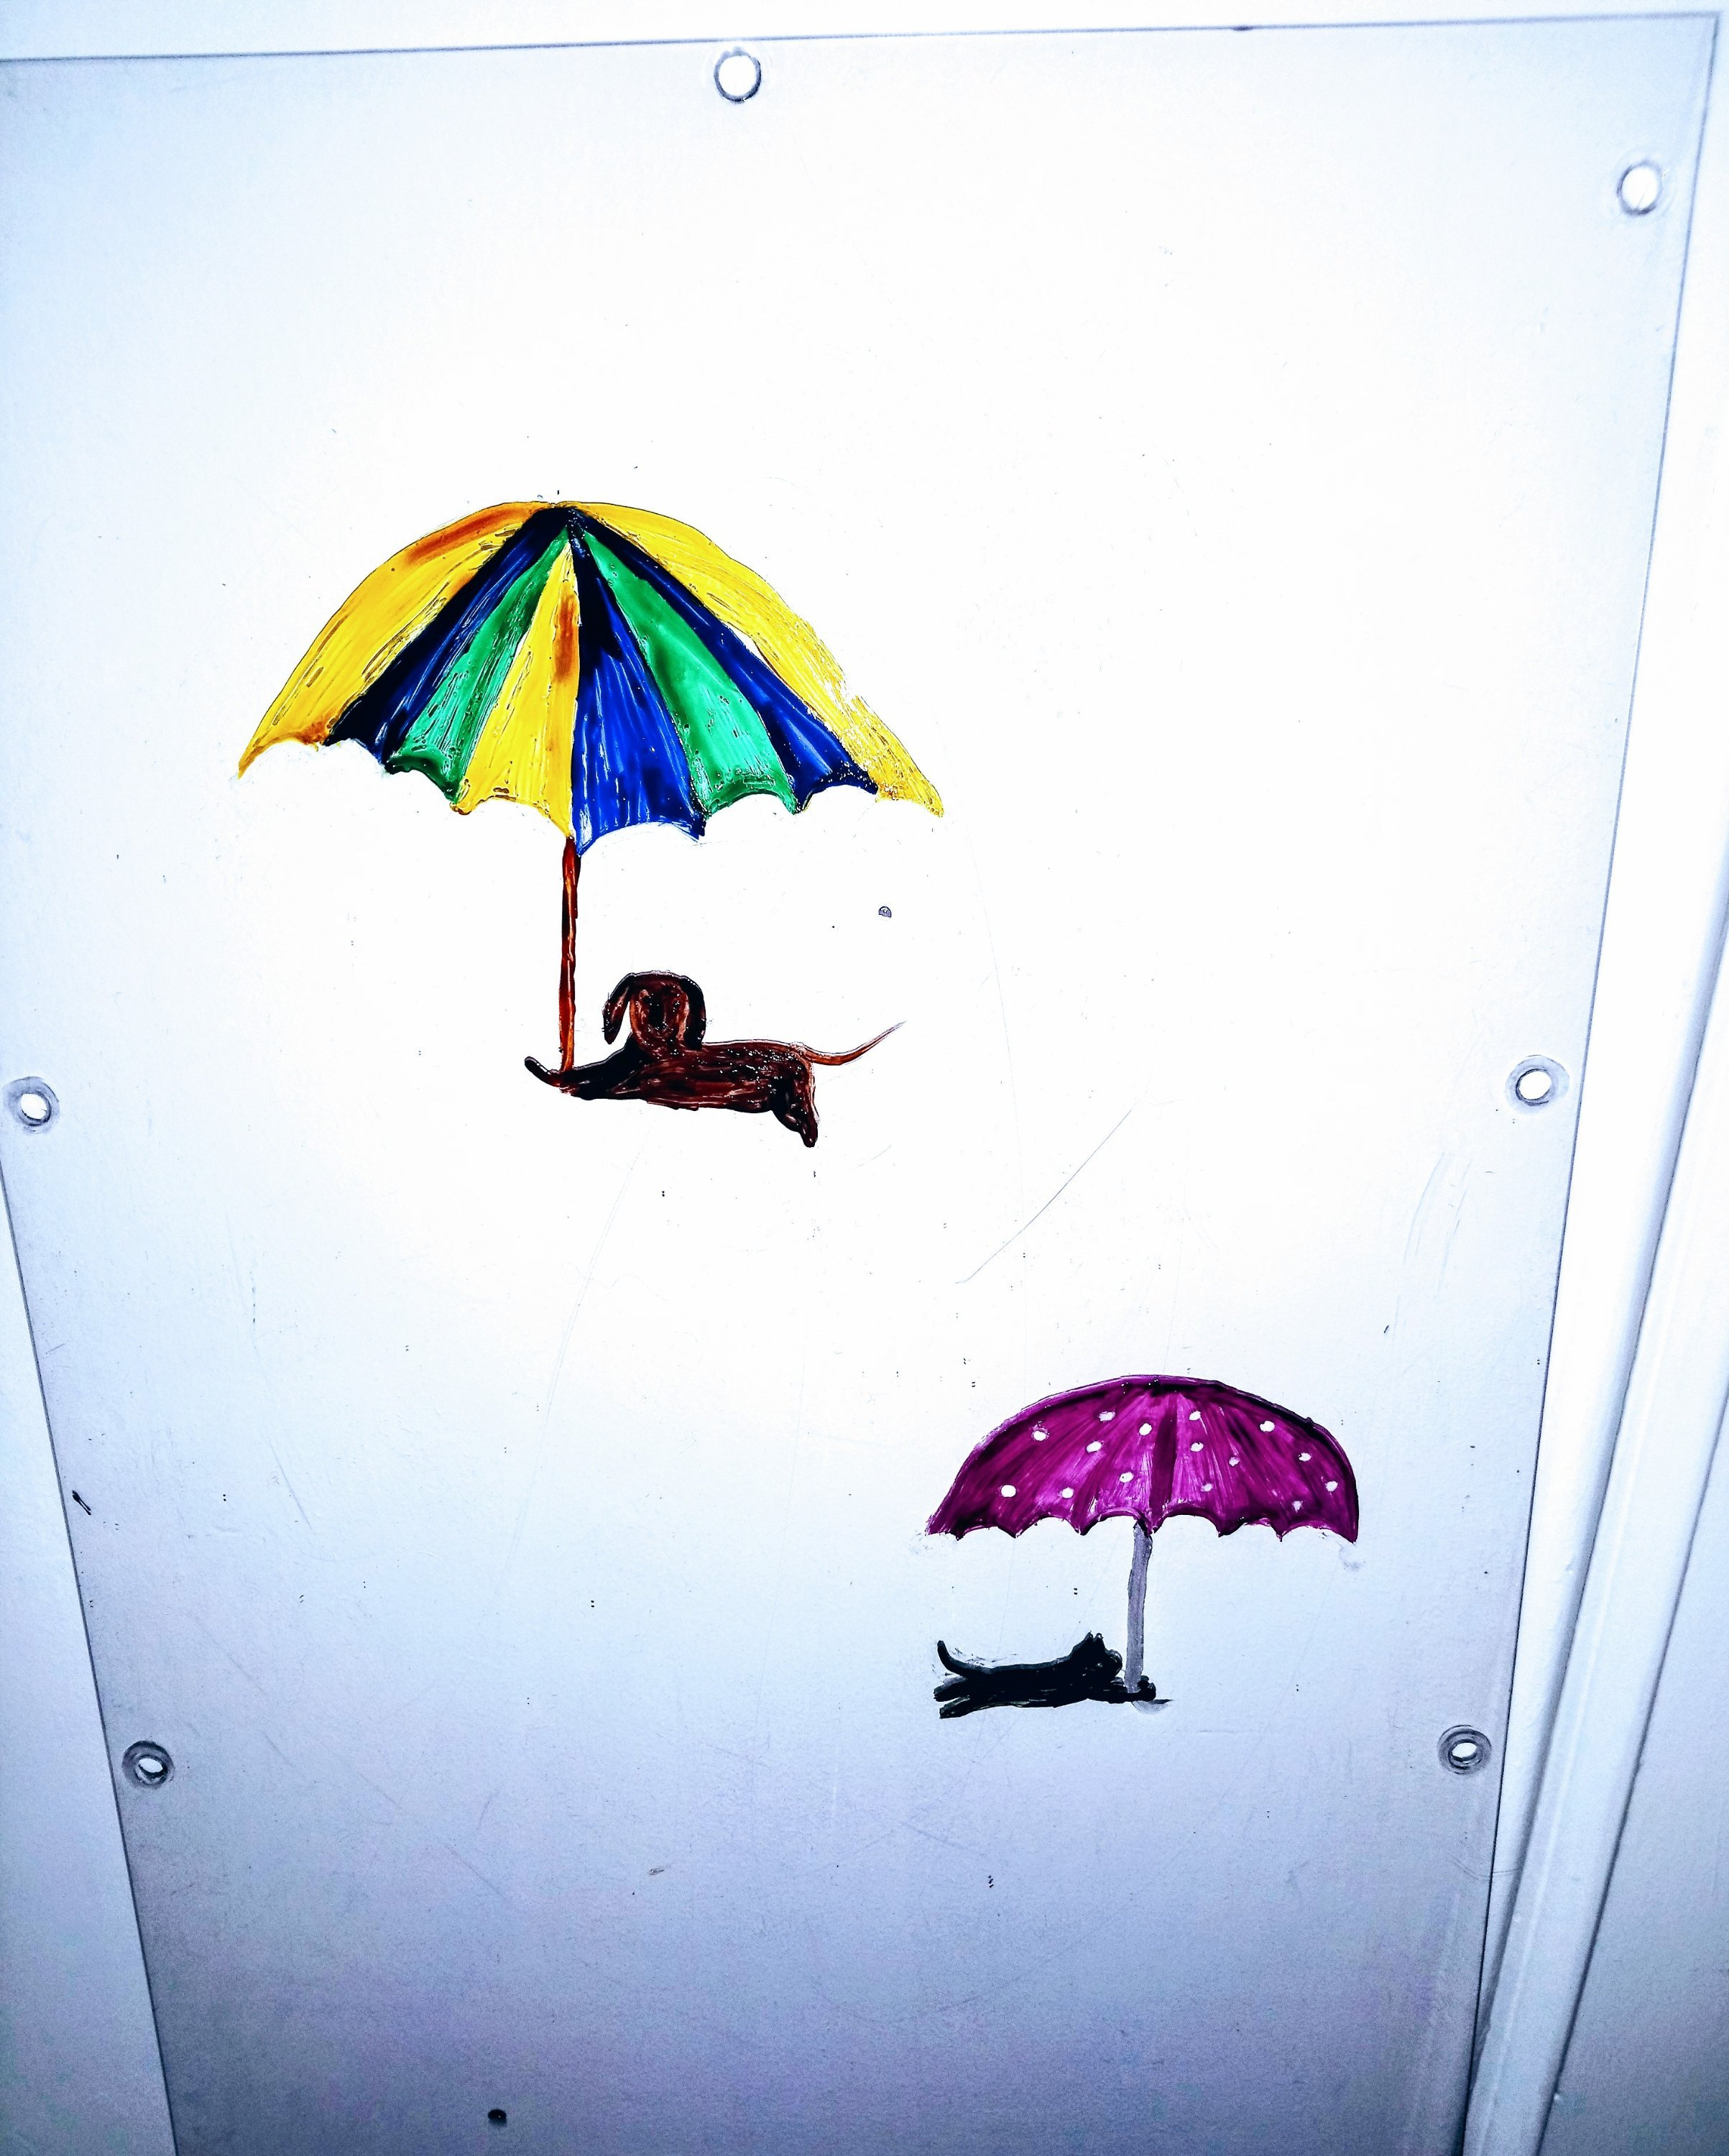 Raining cats and dogs with umbrellas, in progress painting